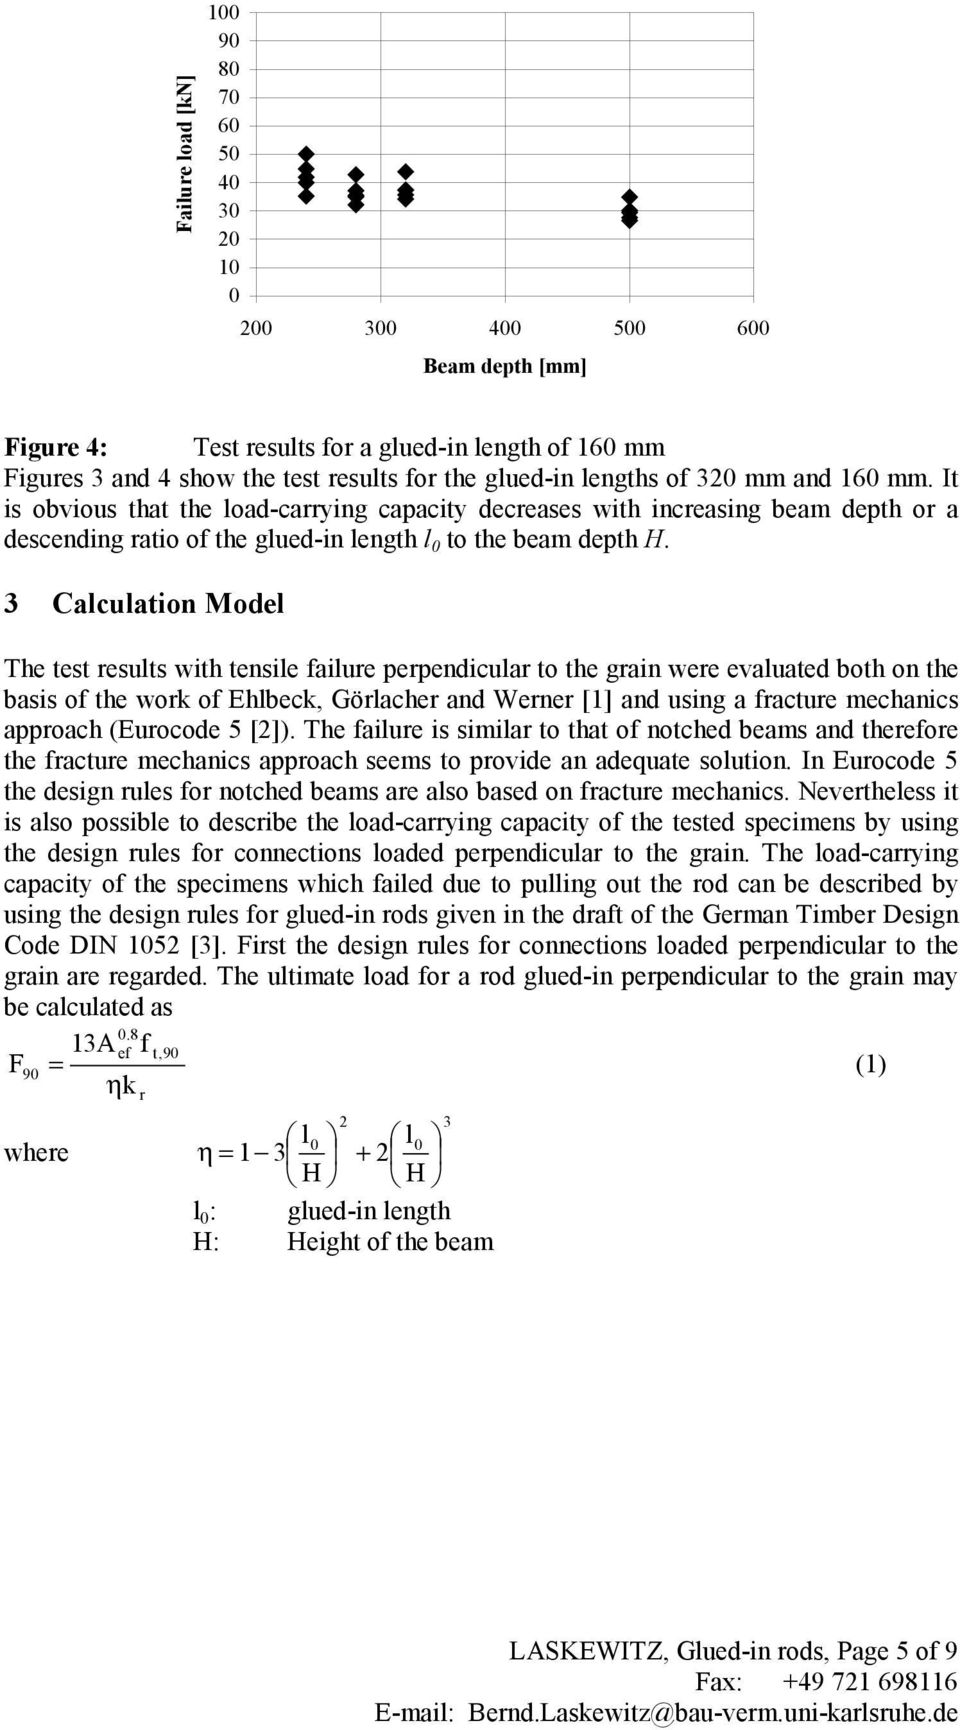 3 Calculation Model The test results with tensile failure perpendicular to the grain were evaluated both on the basis of the work of Ehlbeck, Görlacher and Werner [1] and using a fracture mechanics